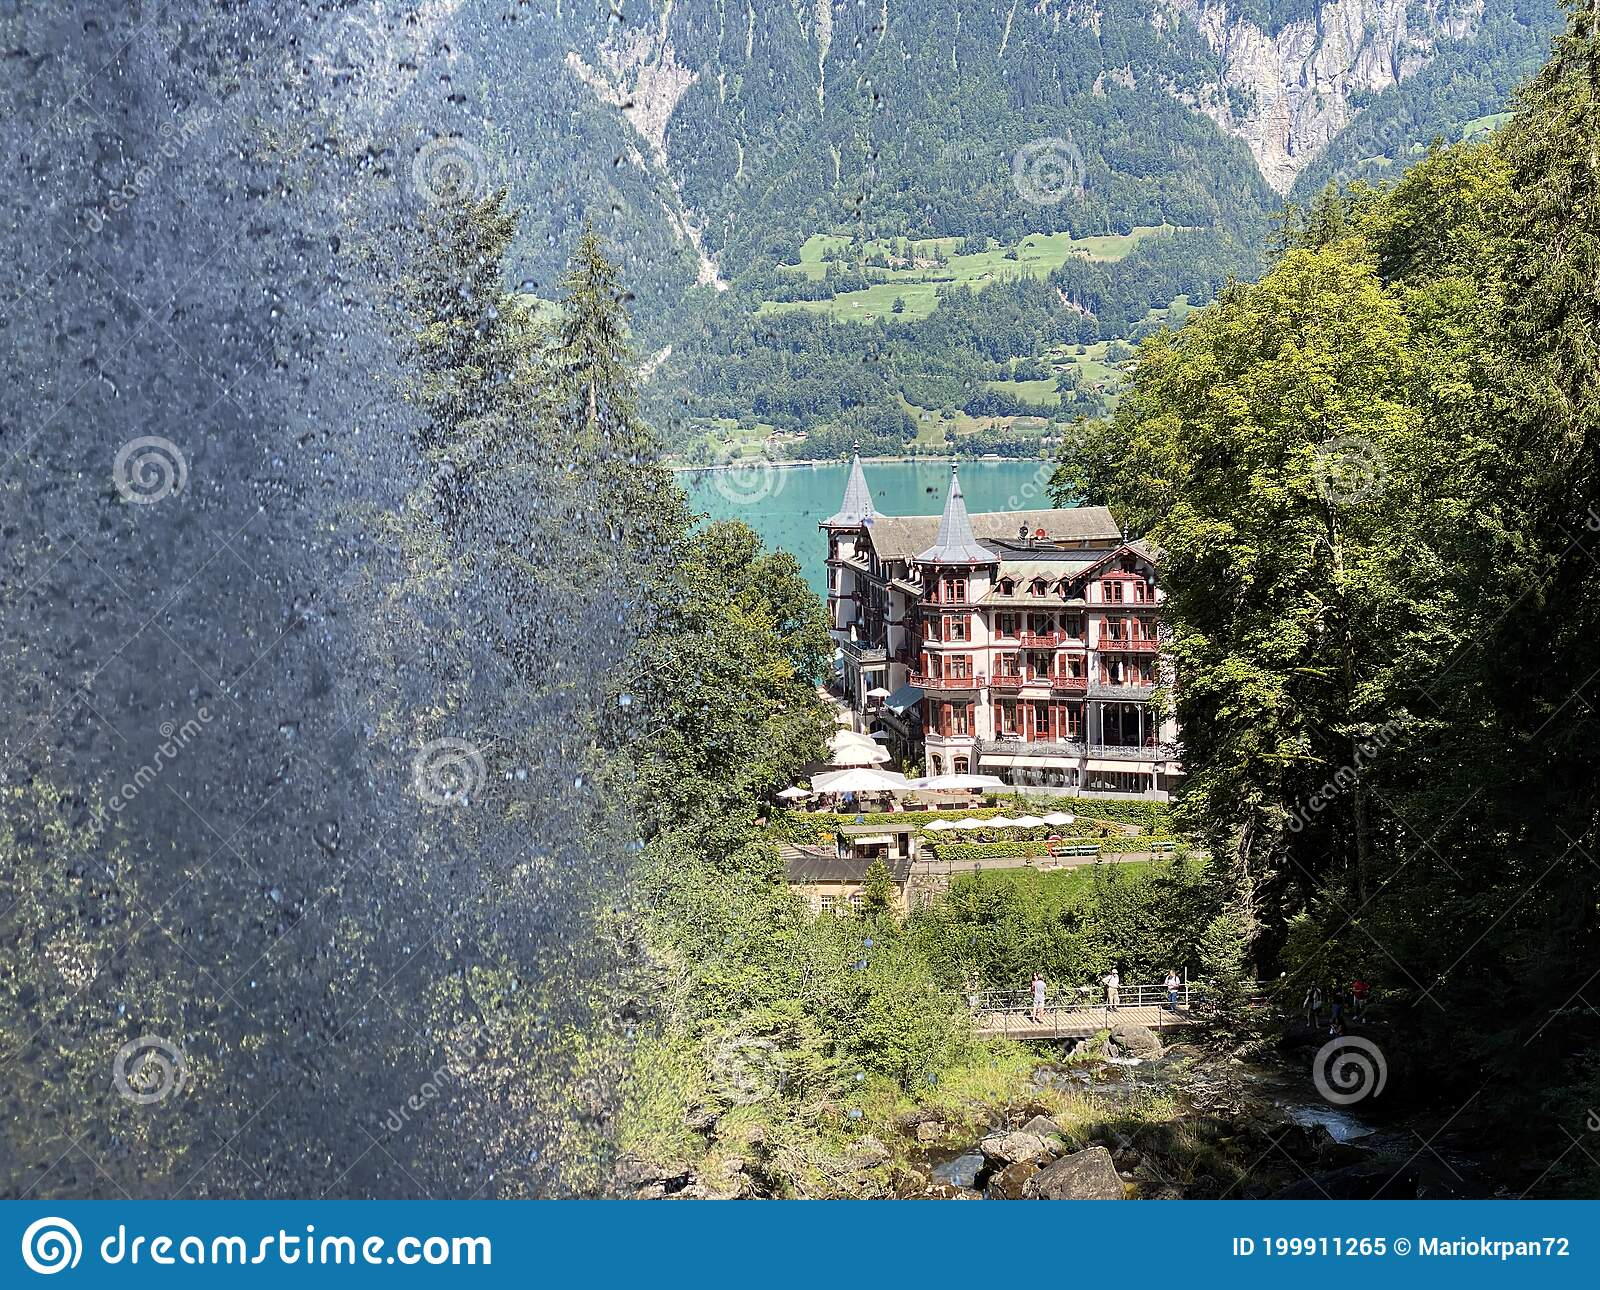 Grand Hotel Giessbach Above Lake Brienz And Next To The Waterfall Giesbach Falls Canton Of Bern Switzerland Stock Image Image Of Bern Leaf 199911265